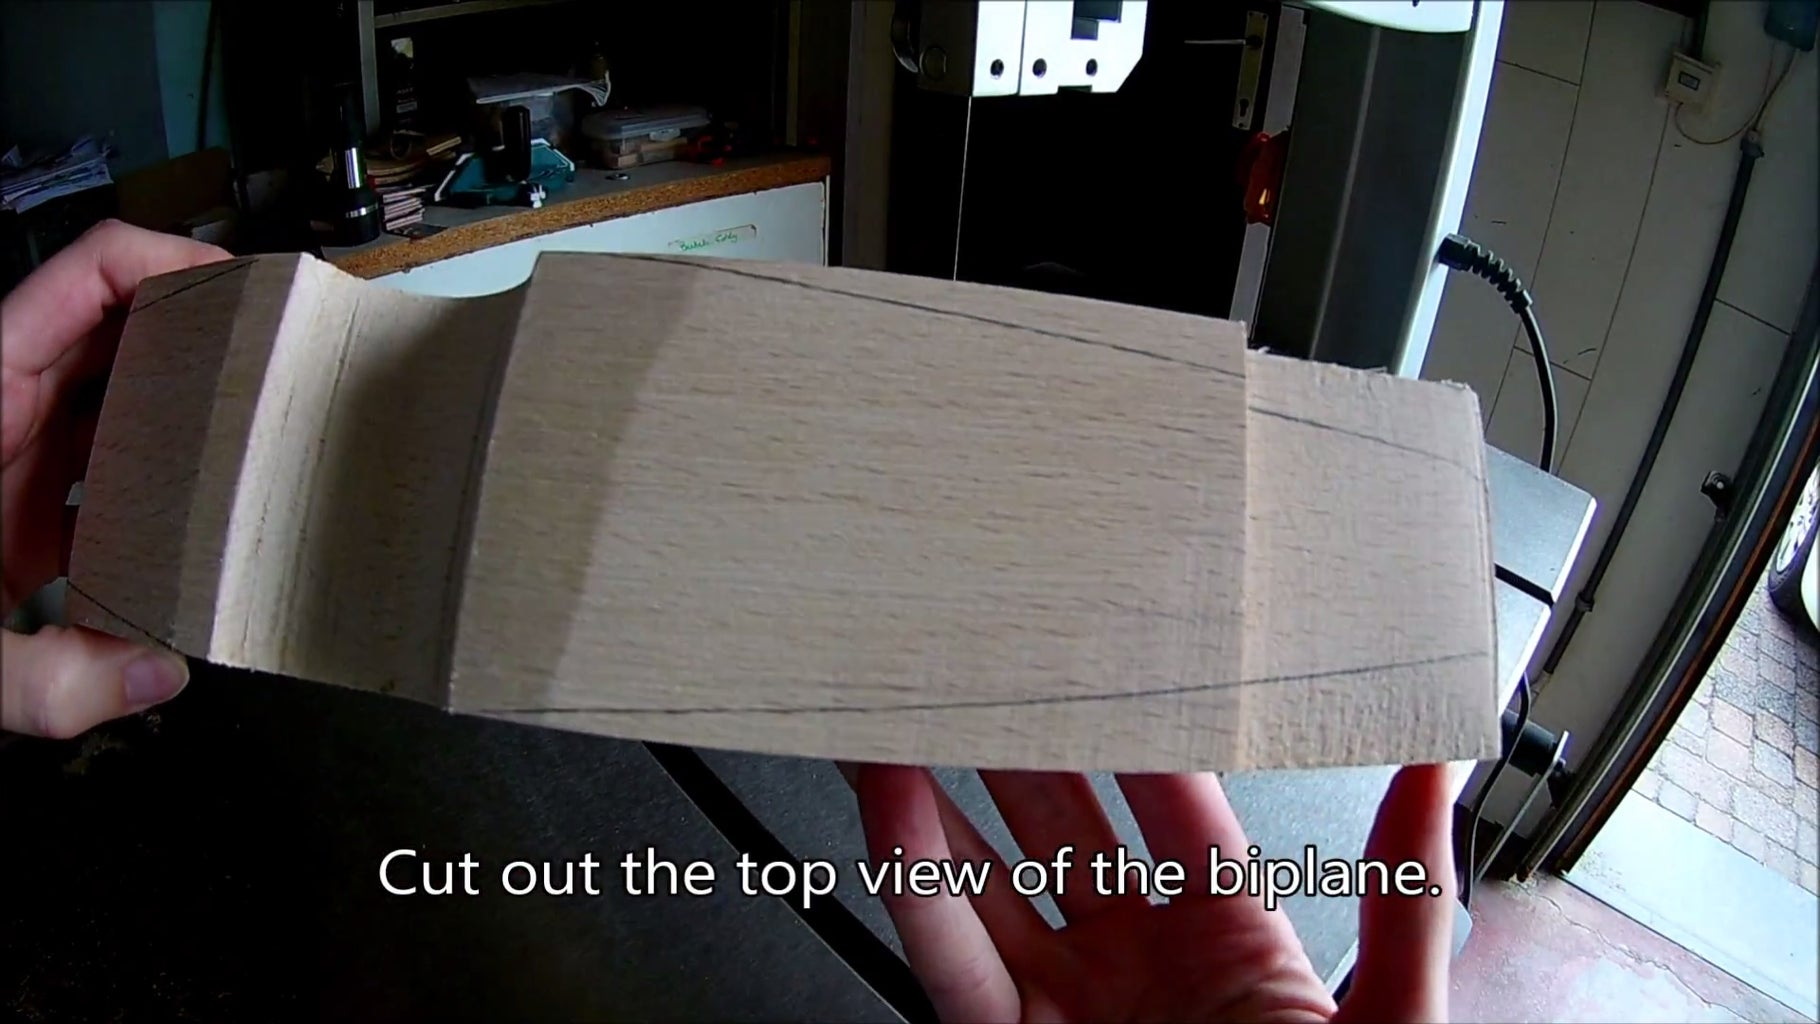 Step 1: Body of the Biplane